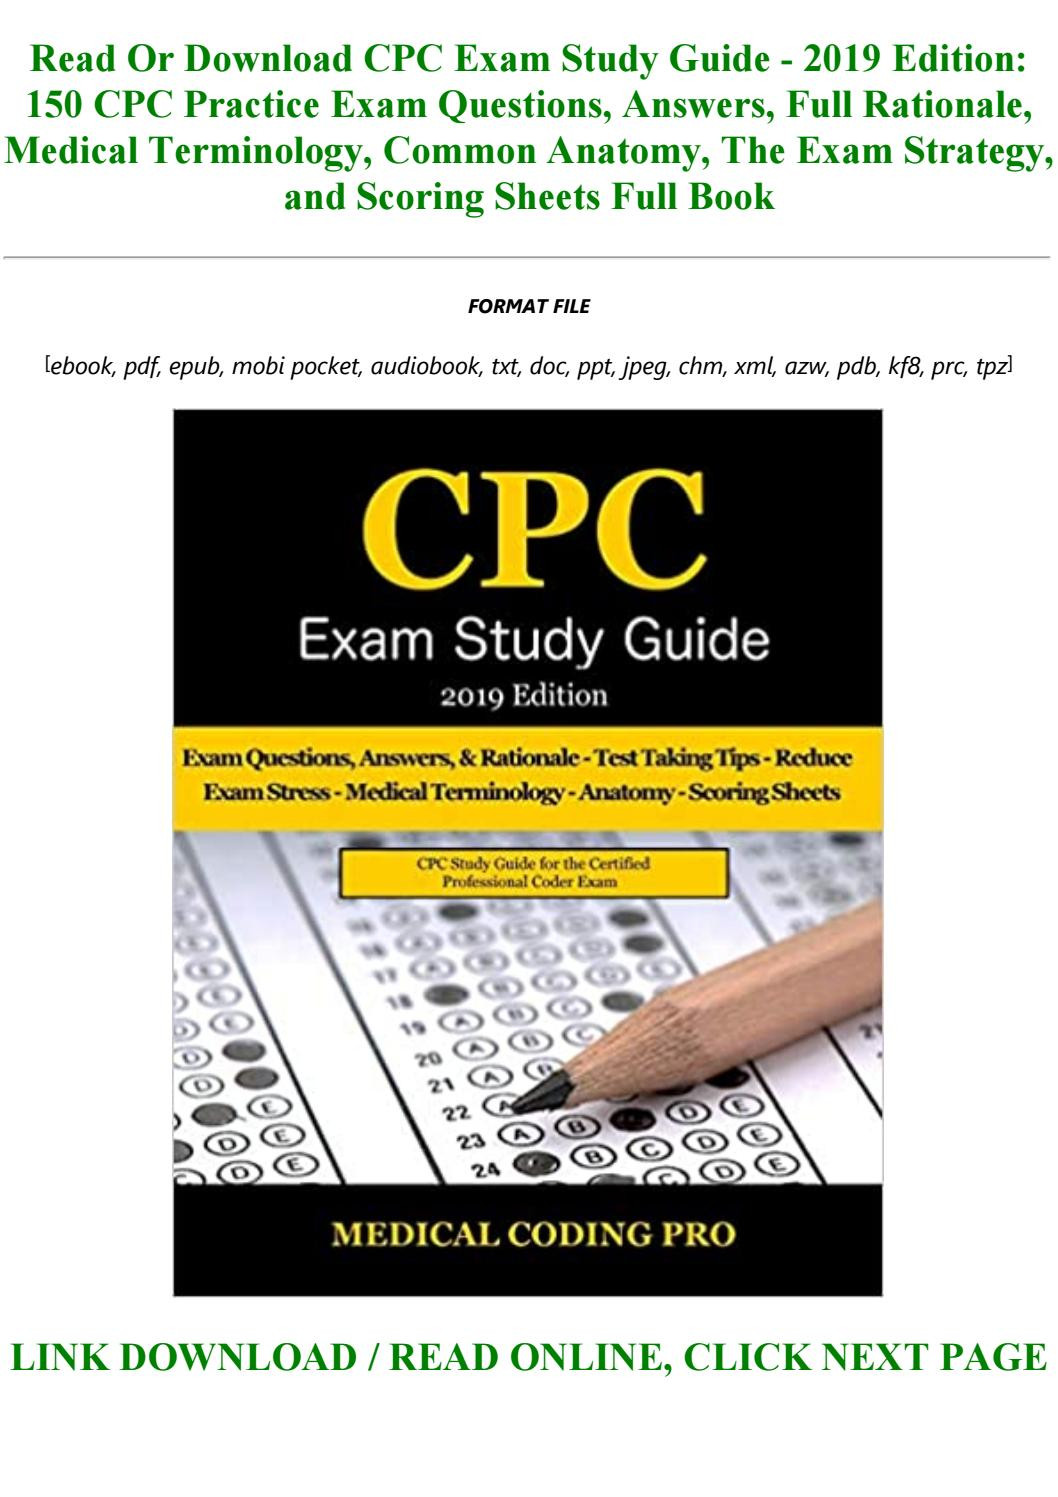 Test Taking Skills Worksheets Download Pdf Download Cpc Exam Study Guide 2019 Edition 150 Cpc